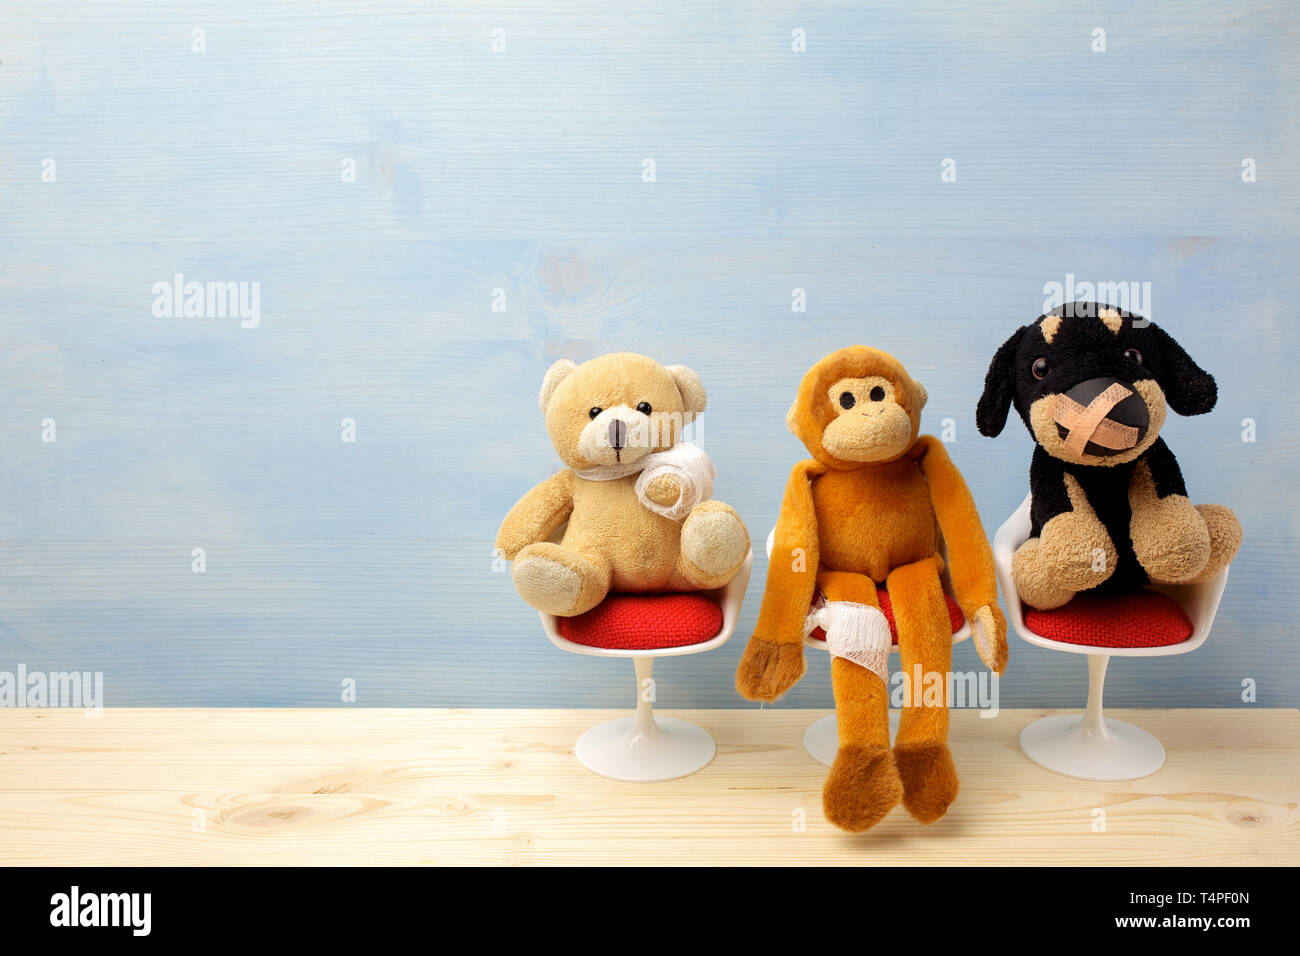 Pediatrician. Toy animals sitting on the chair in hospital. Health center for children. - Stock Image